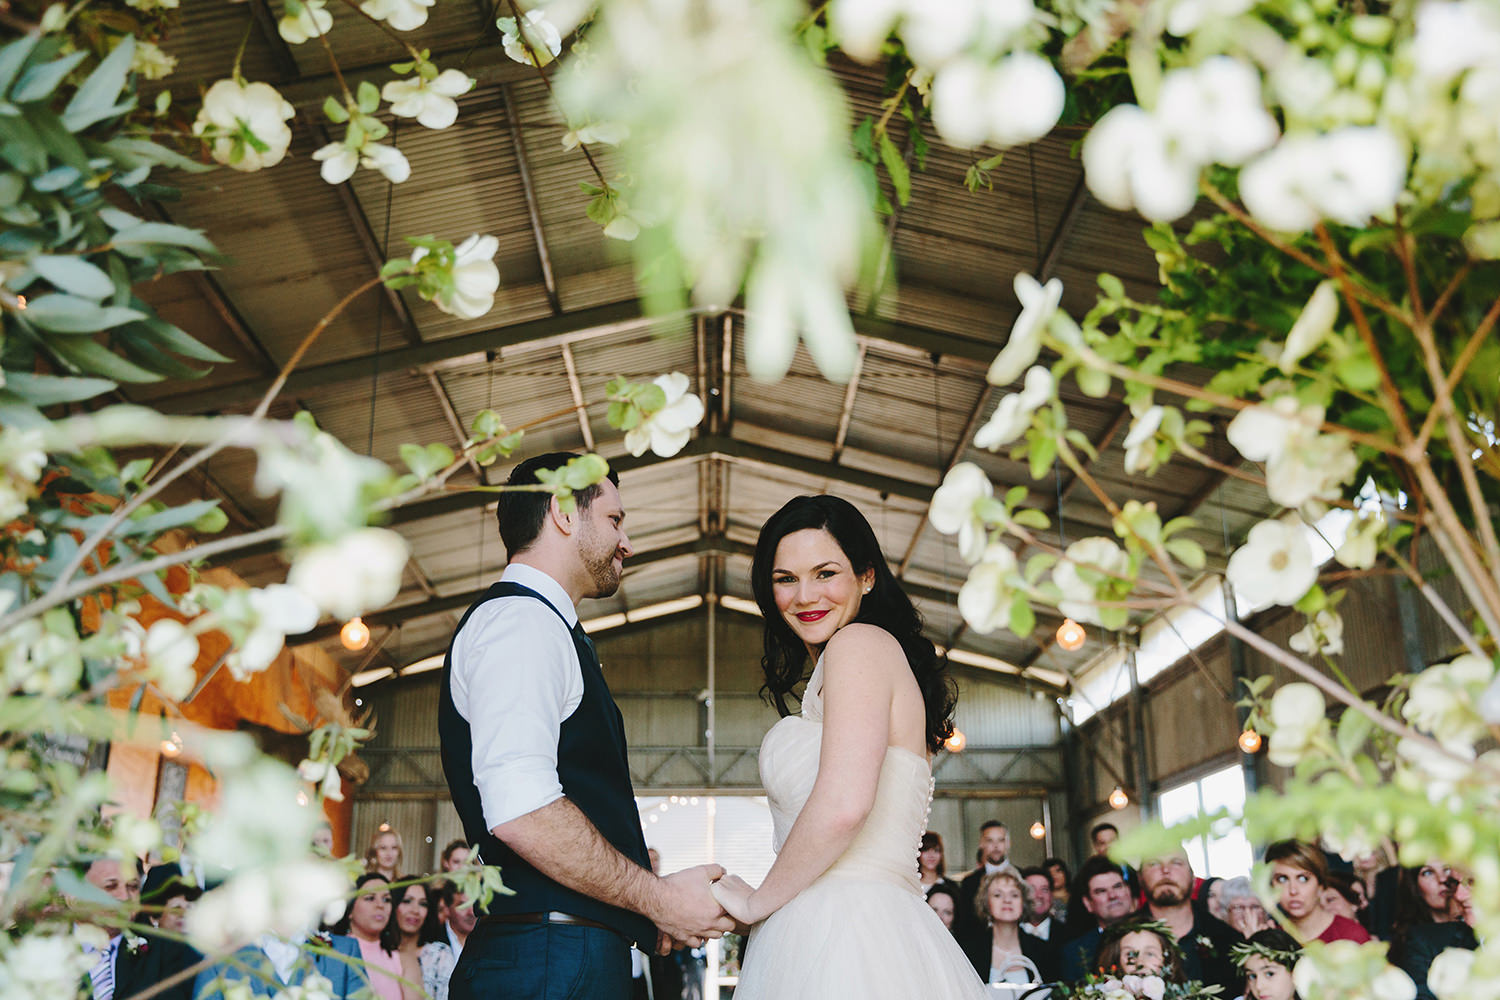 Melbourne_Winery_Wedding_Chris_Merrily101.JPG